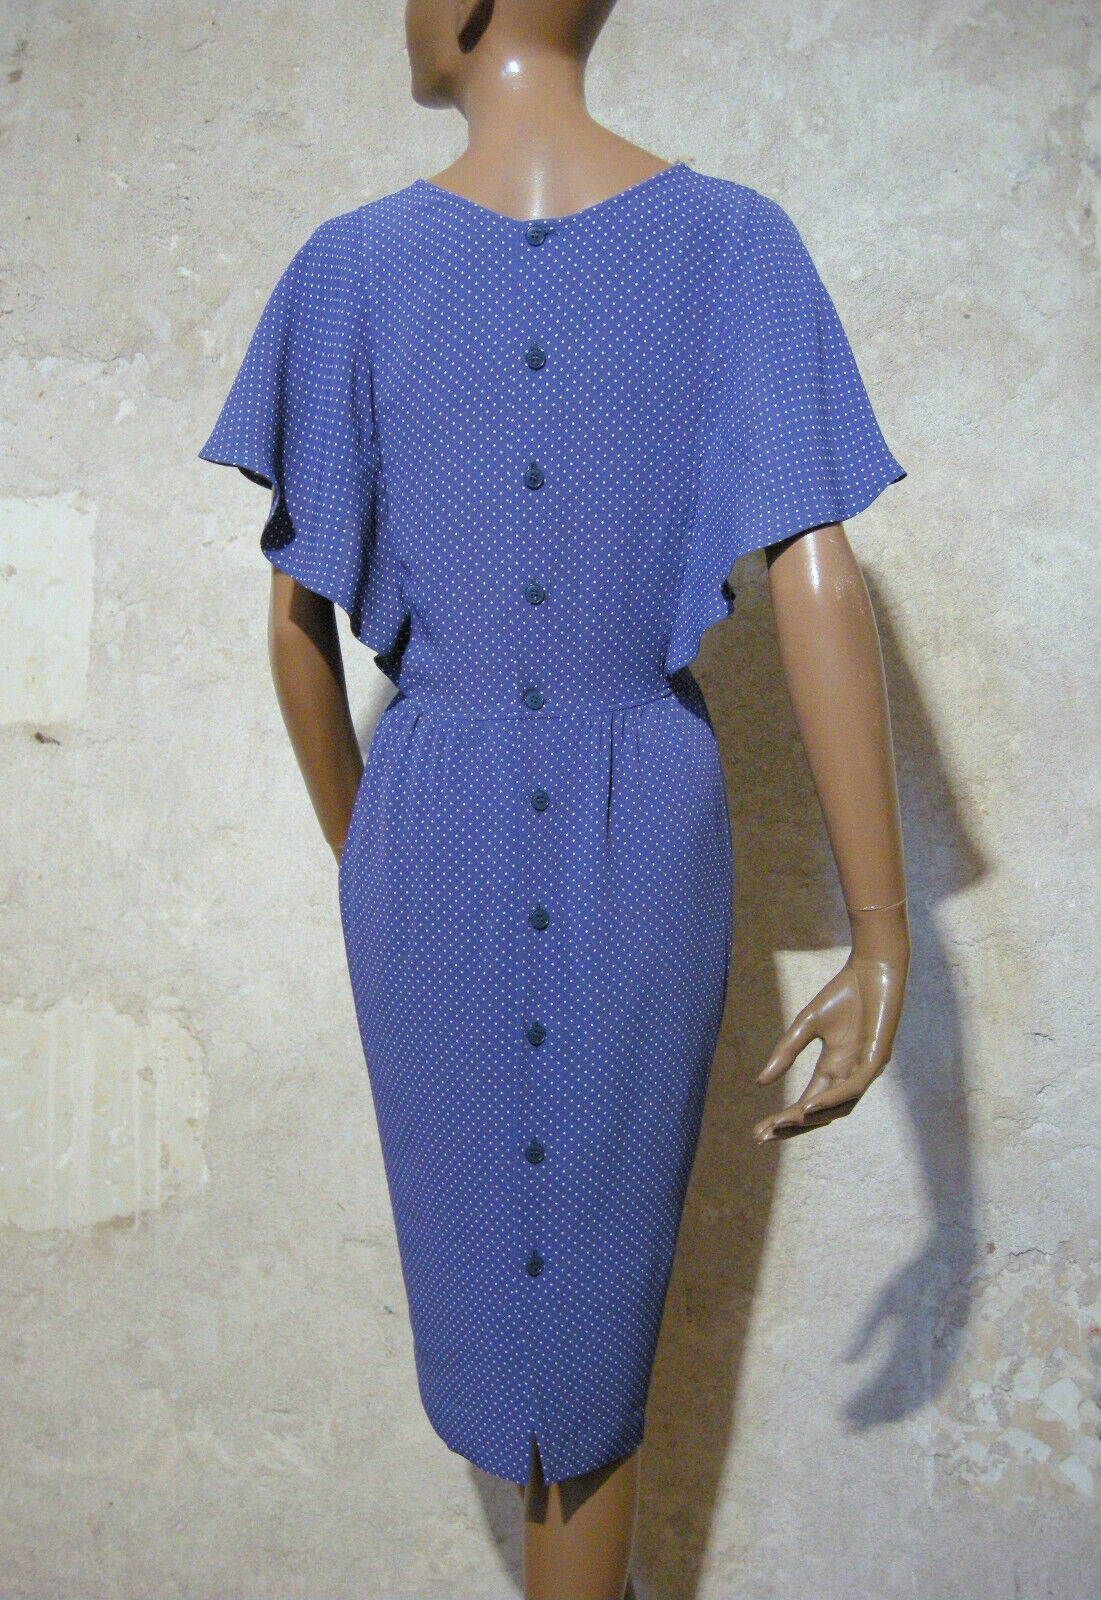 Cacharel chic vintage robe pois 1980 true vtg dress 80s kleid 80er abito ( 36 )